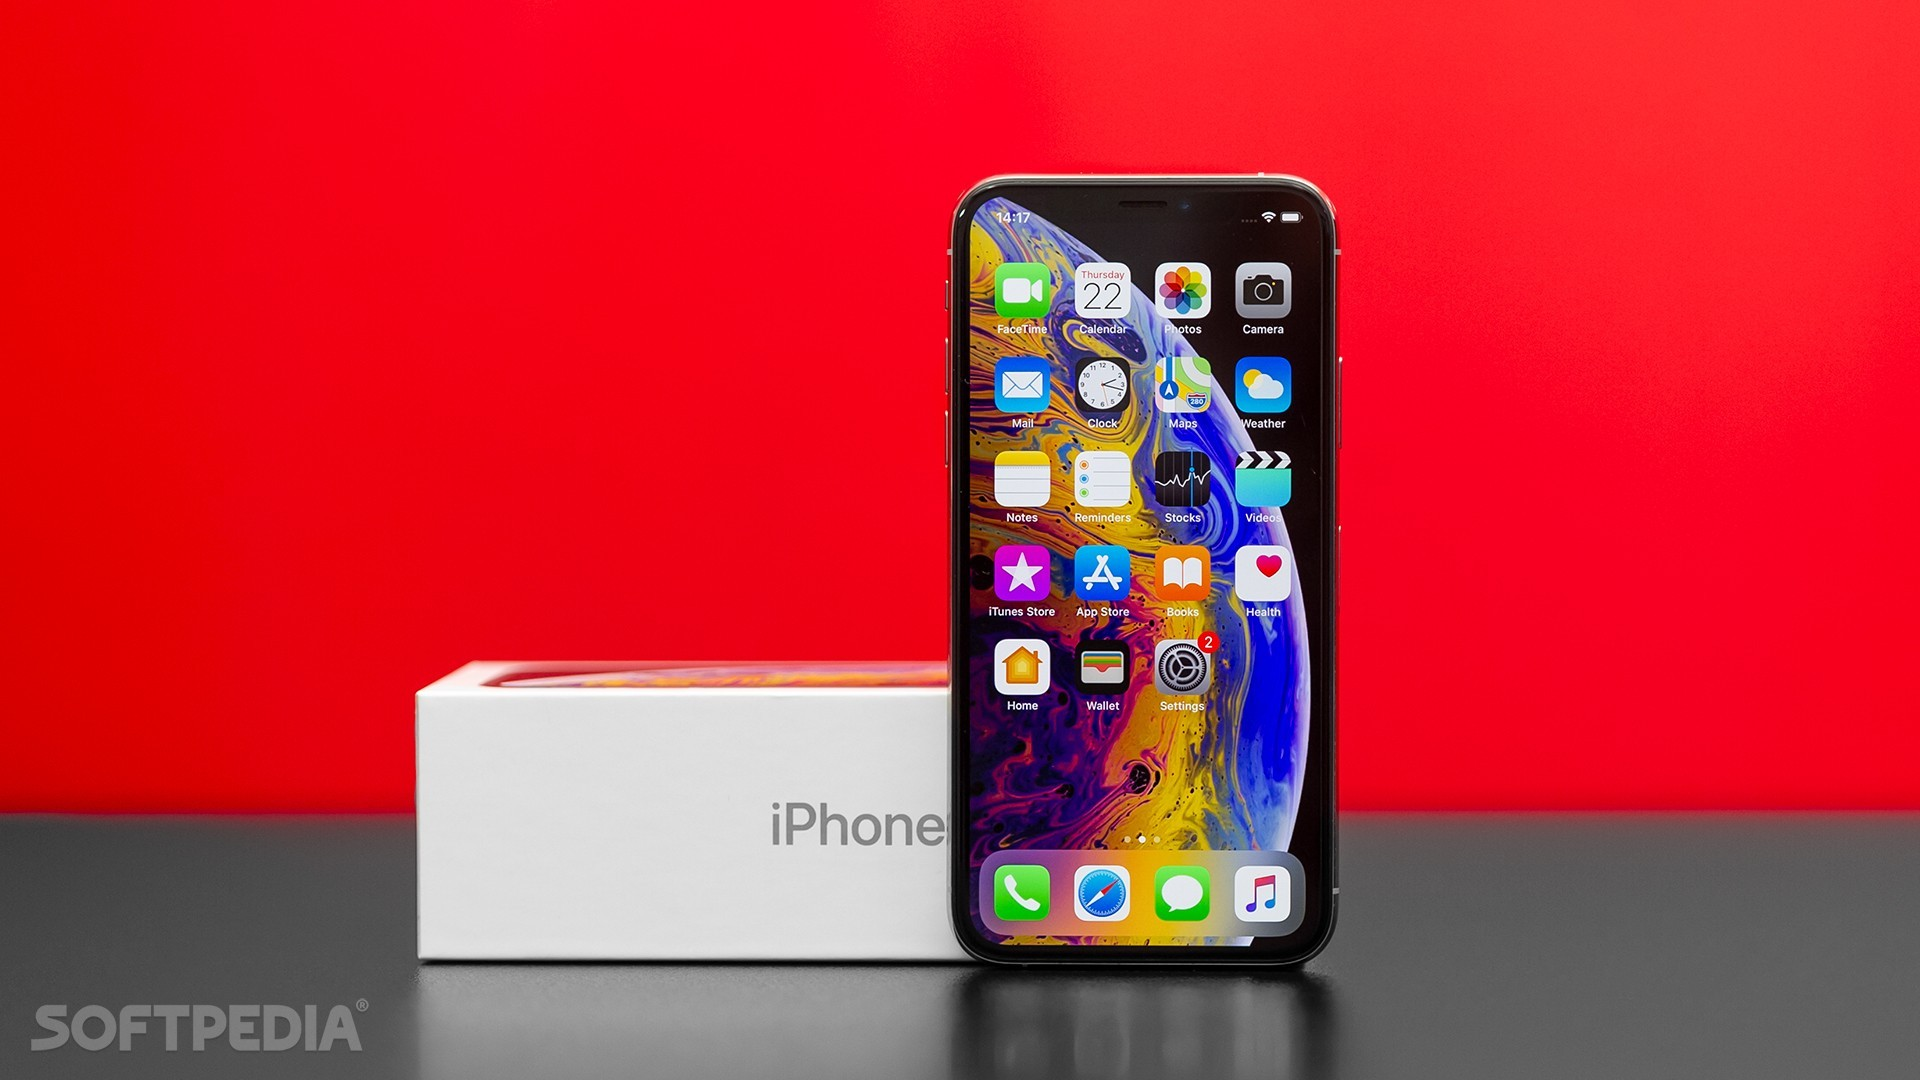 IPhone Prices in China are Slashed - Again